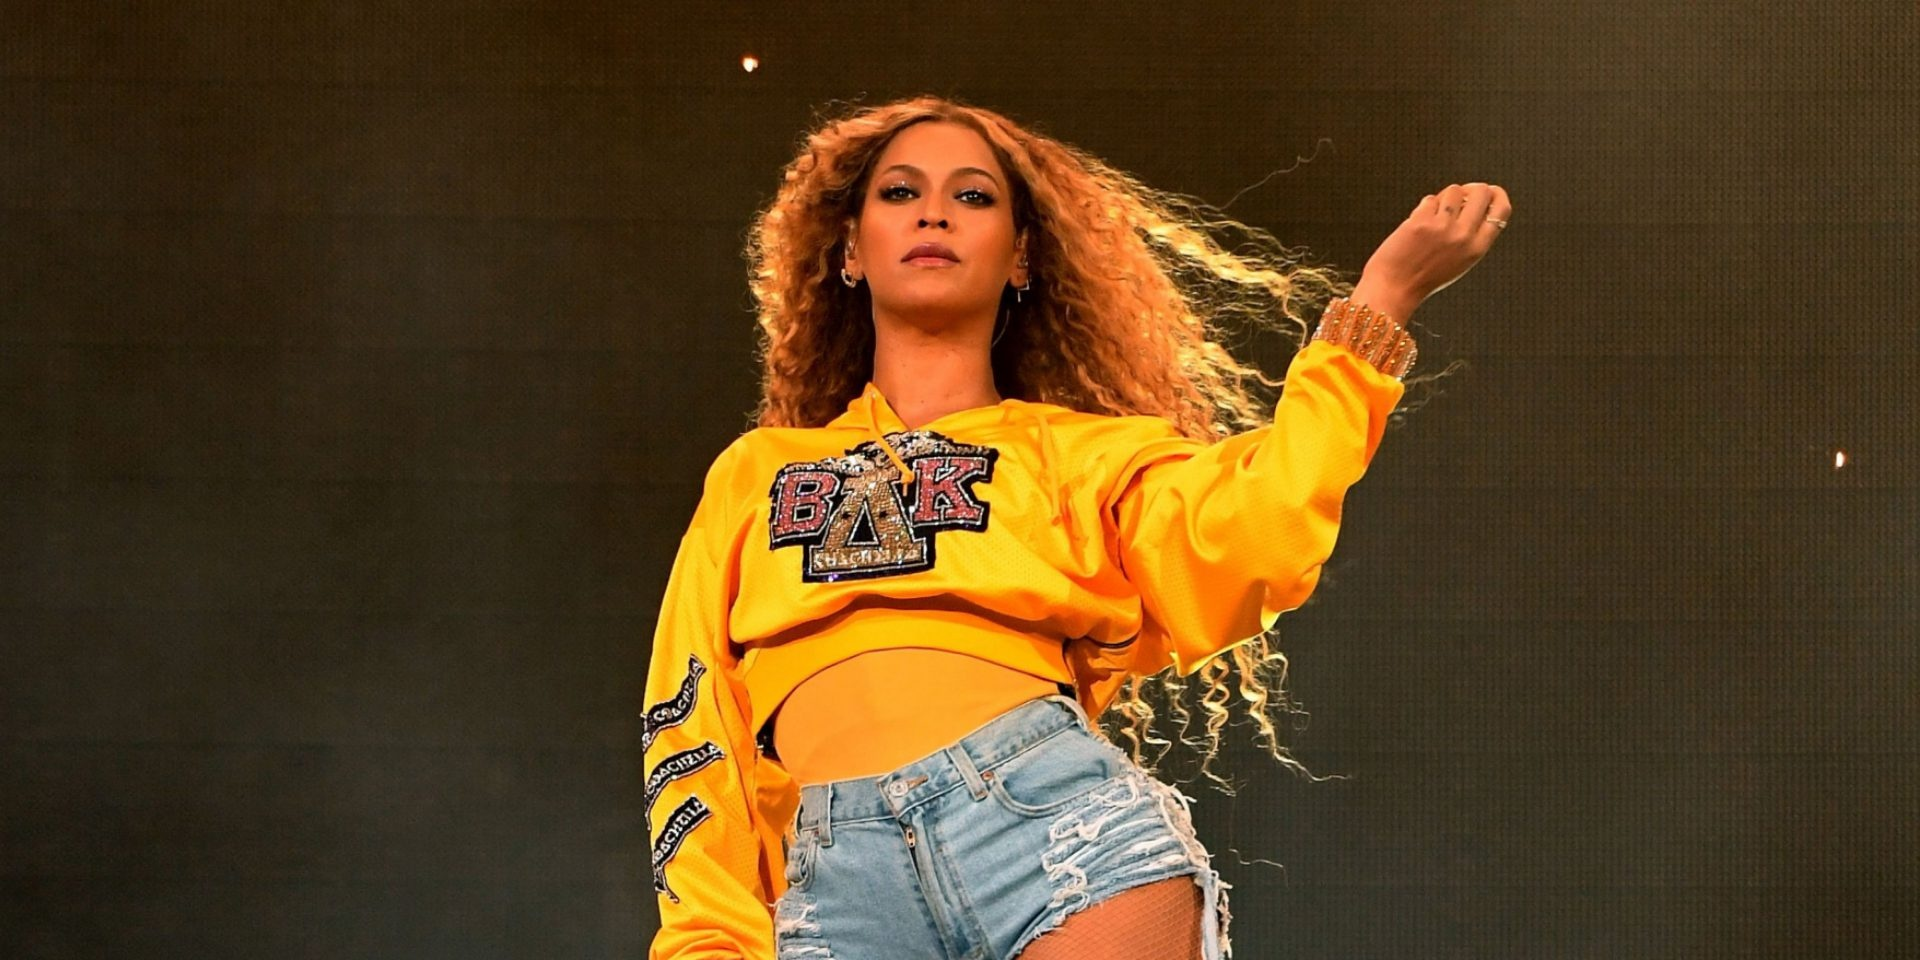 Beyoncé's Coachella 2018 concert film Homecoming is now streaming on Netflix